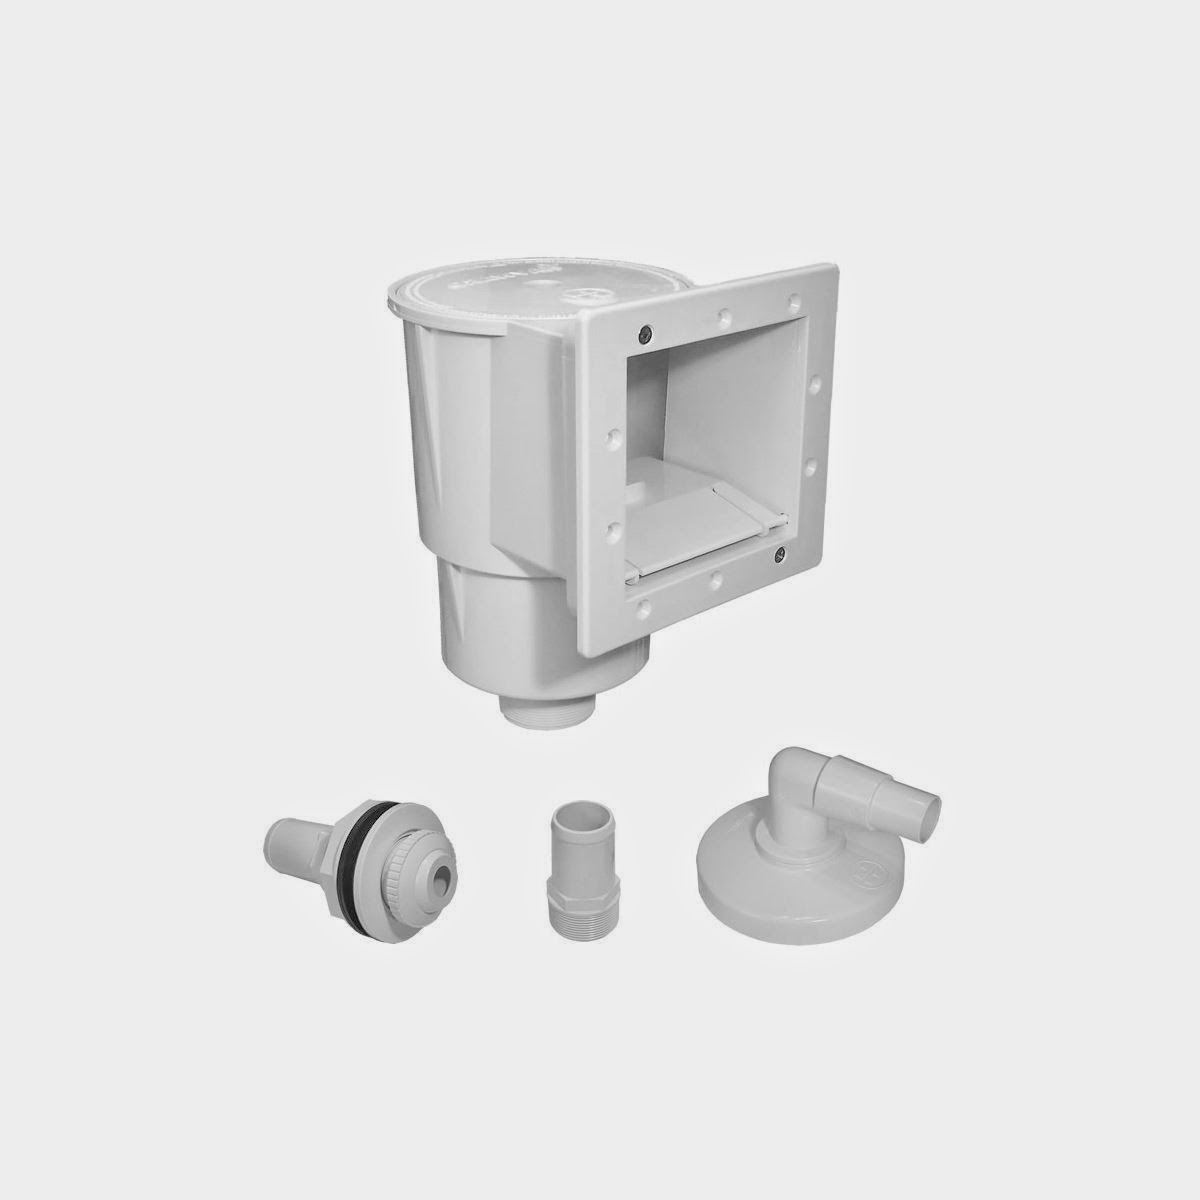 Intex Pool Filter Pump Parts Intex Pool Skimmer Intex Pool Skimmer Parts